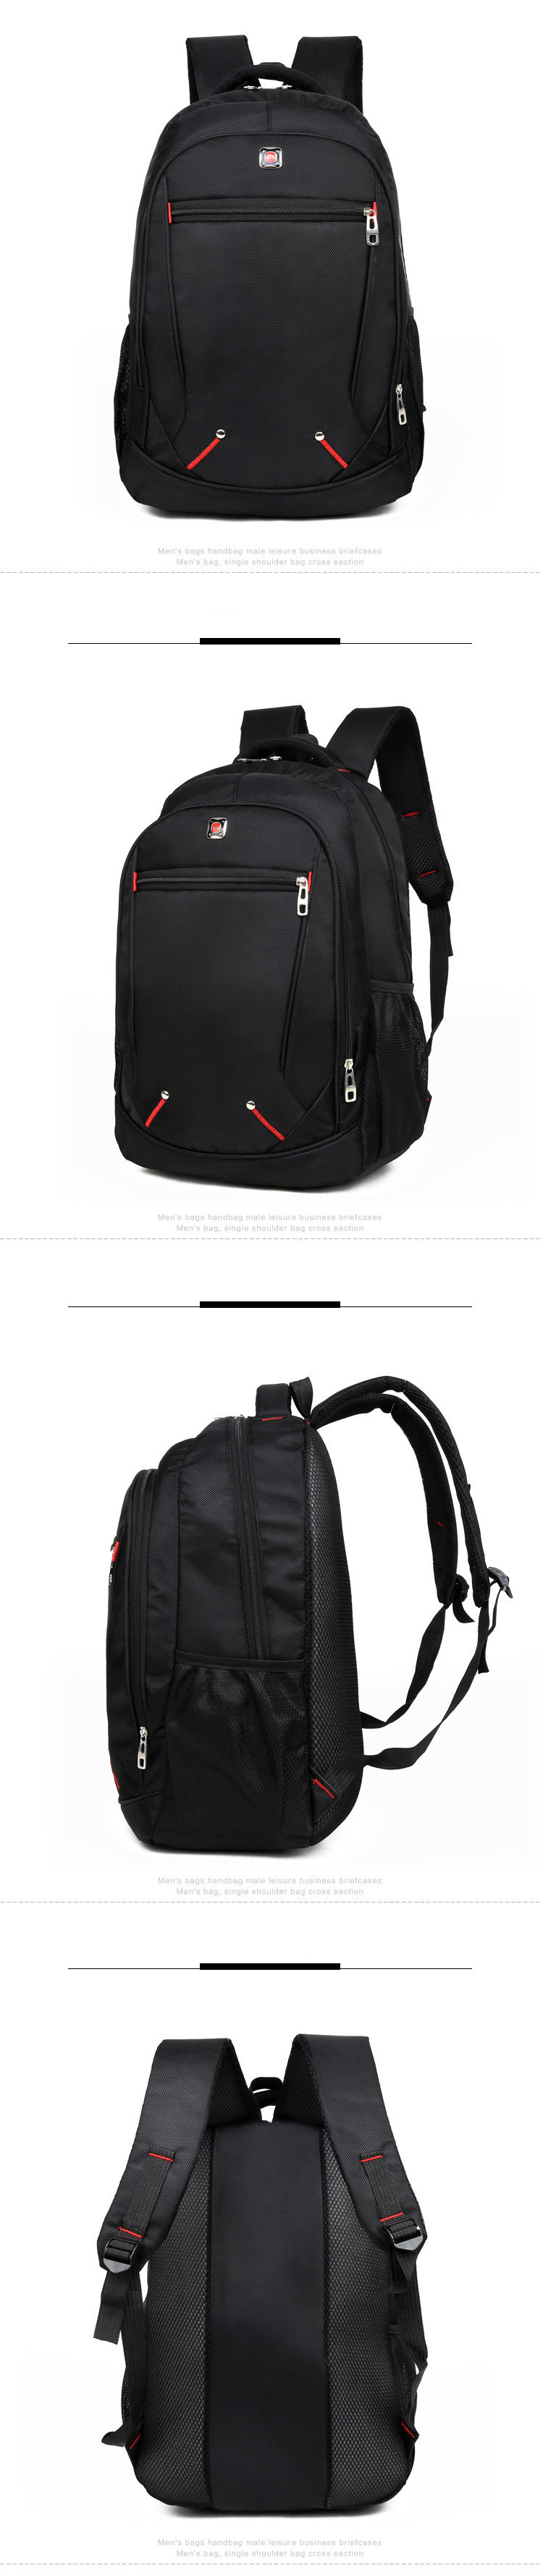 c9bae0edfc38 SHUAIBO High-Capacity Men s Backpack Korean Casual 14 Inch Computer Rucksack  High Quality Travel Bagpack Brand School Bags A296USD 60.99 piece